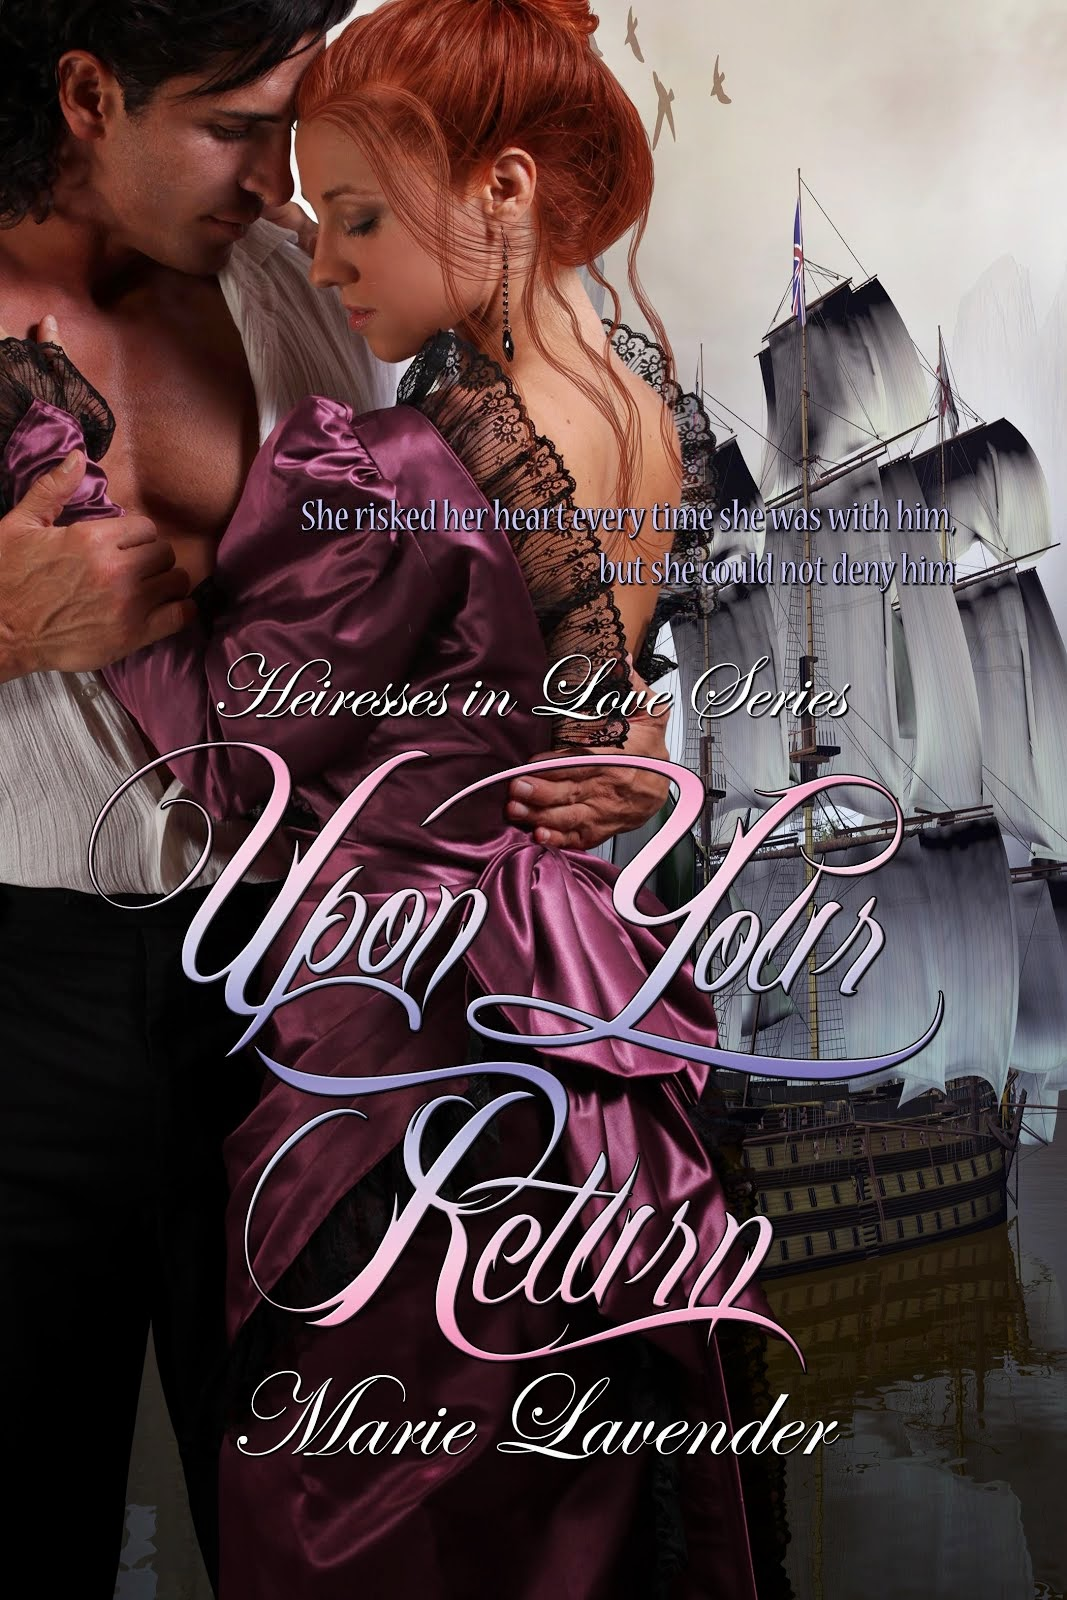 http://www.amazon.com/Upon-Your-Return-Marie-Lavender-ebook/dp/B00I0D9LQ8/ref=asap_bc?ie=UTF8